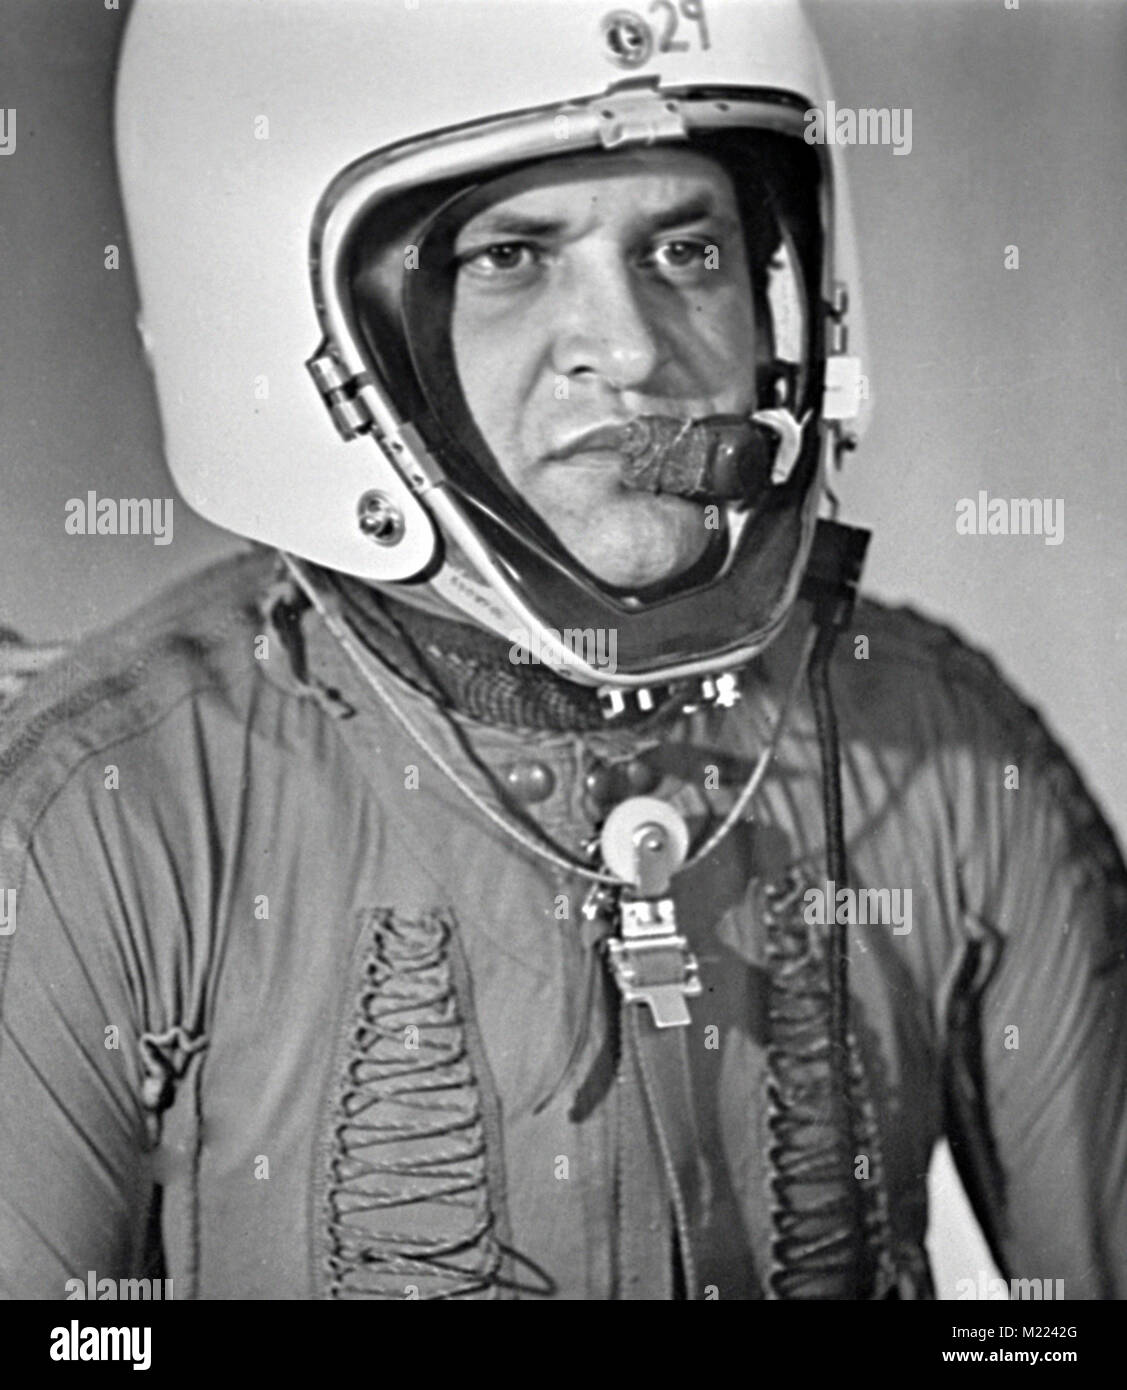 Gary Powers, pilot of U-2 spy plane. Francis Gary Powers wearing special pressure suit for stratospheric flying, - Stock Image